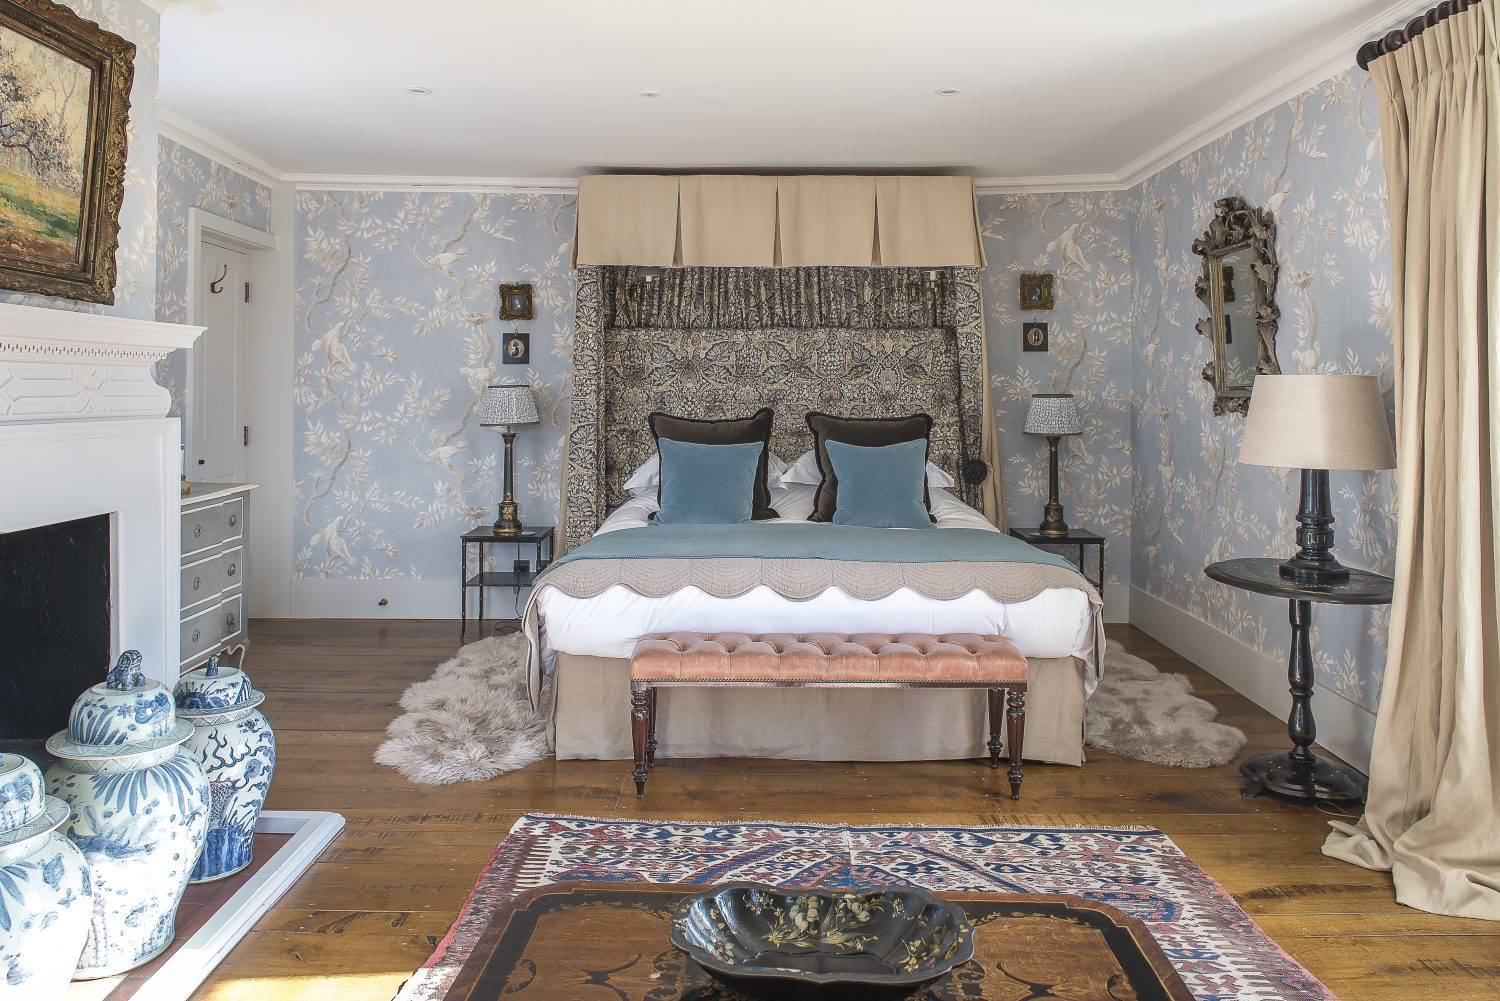 The headboard is covered in Alhambra by Lewis & Wood